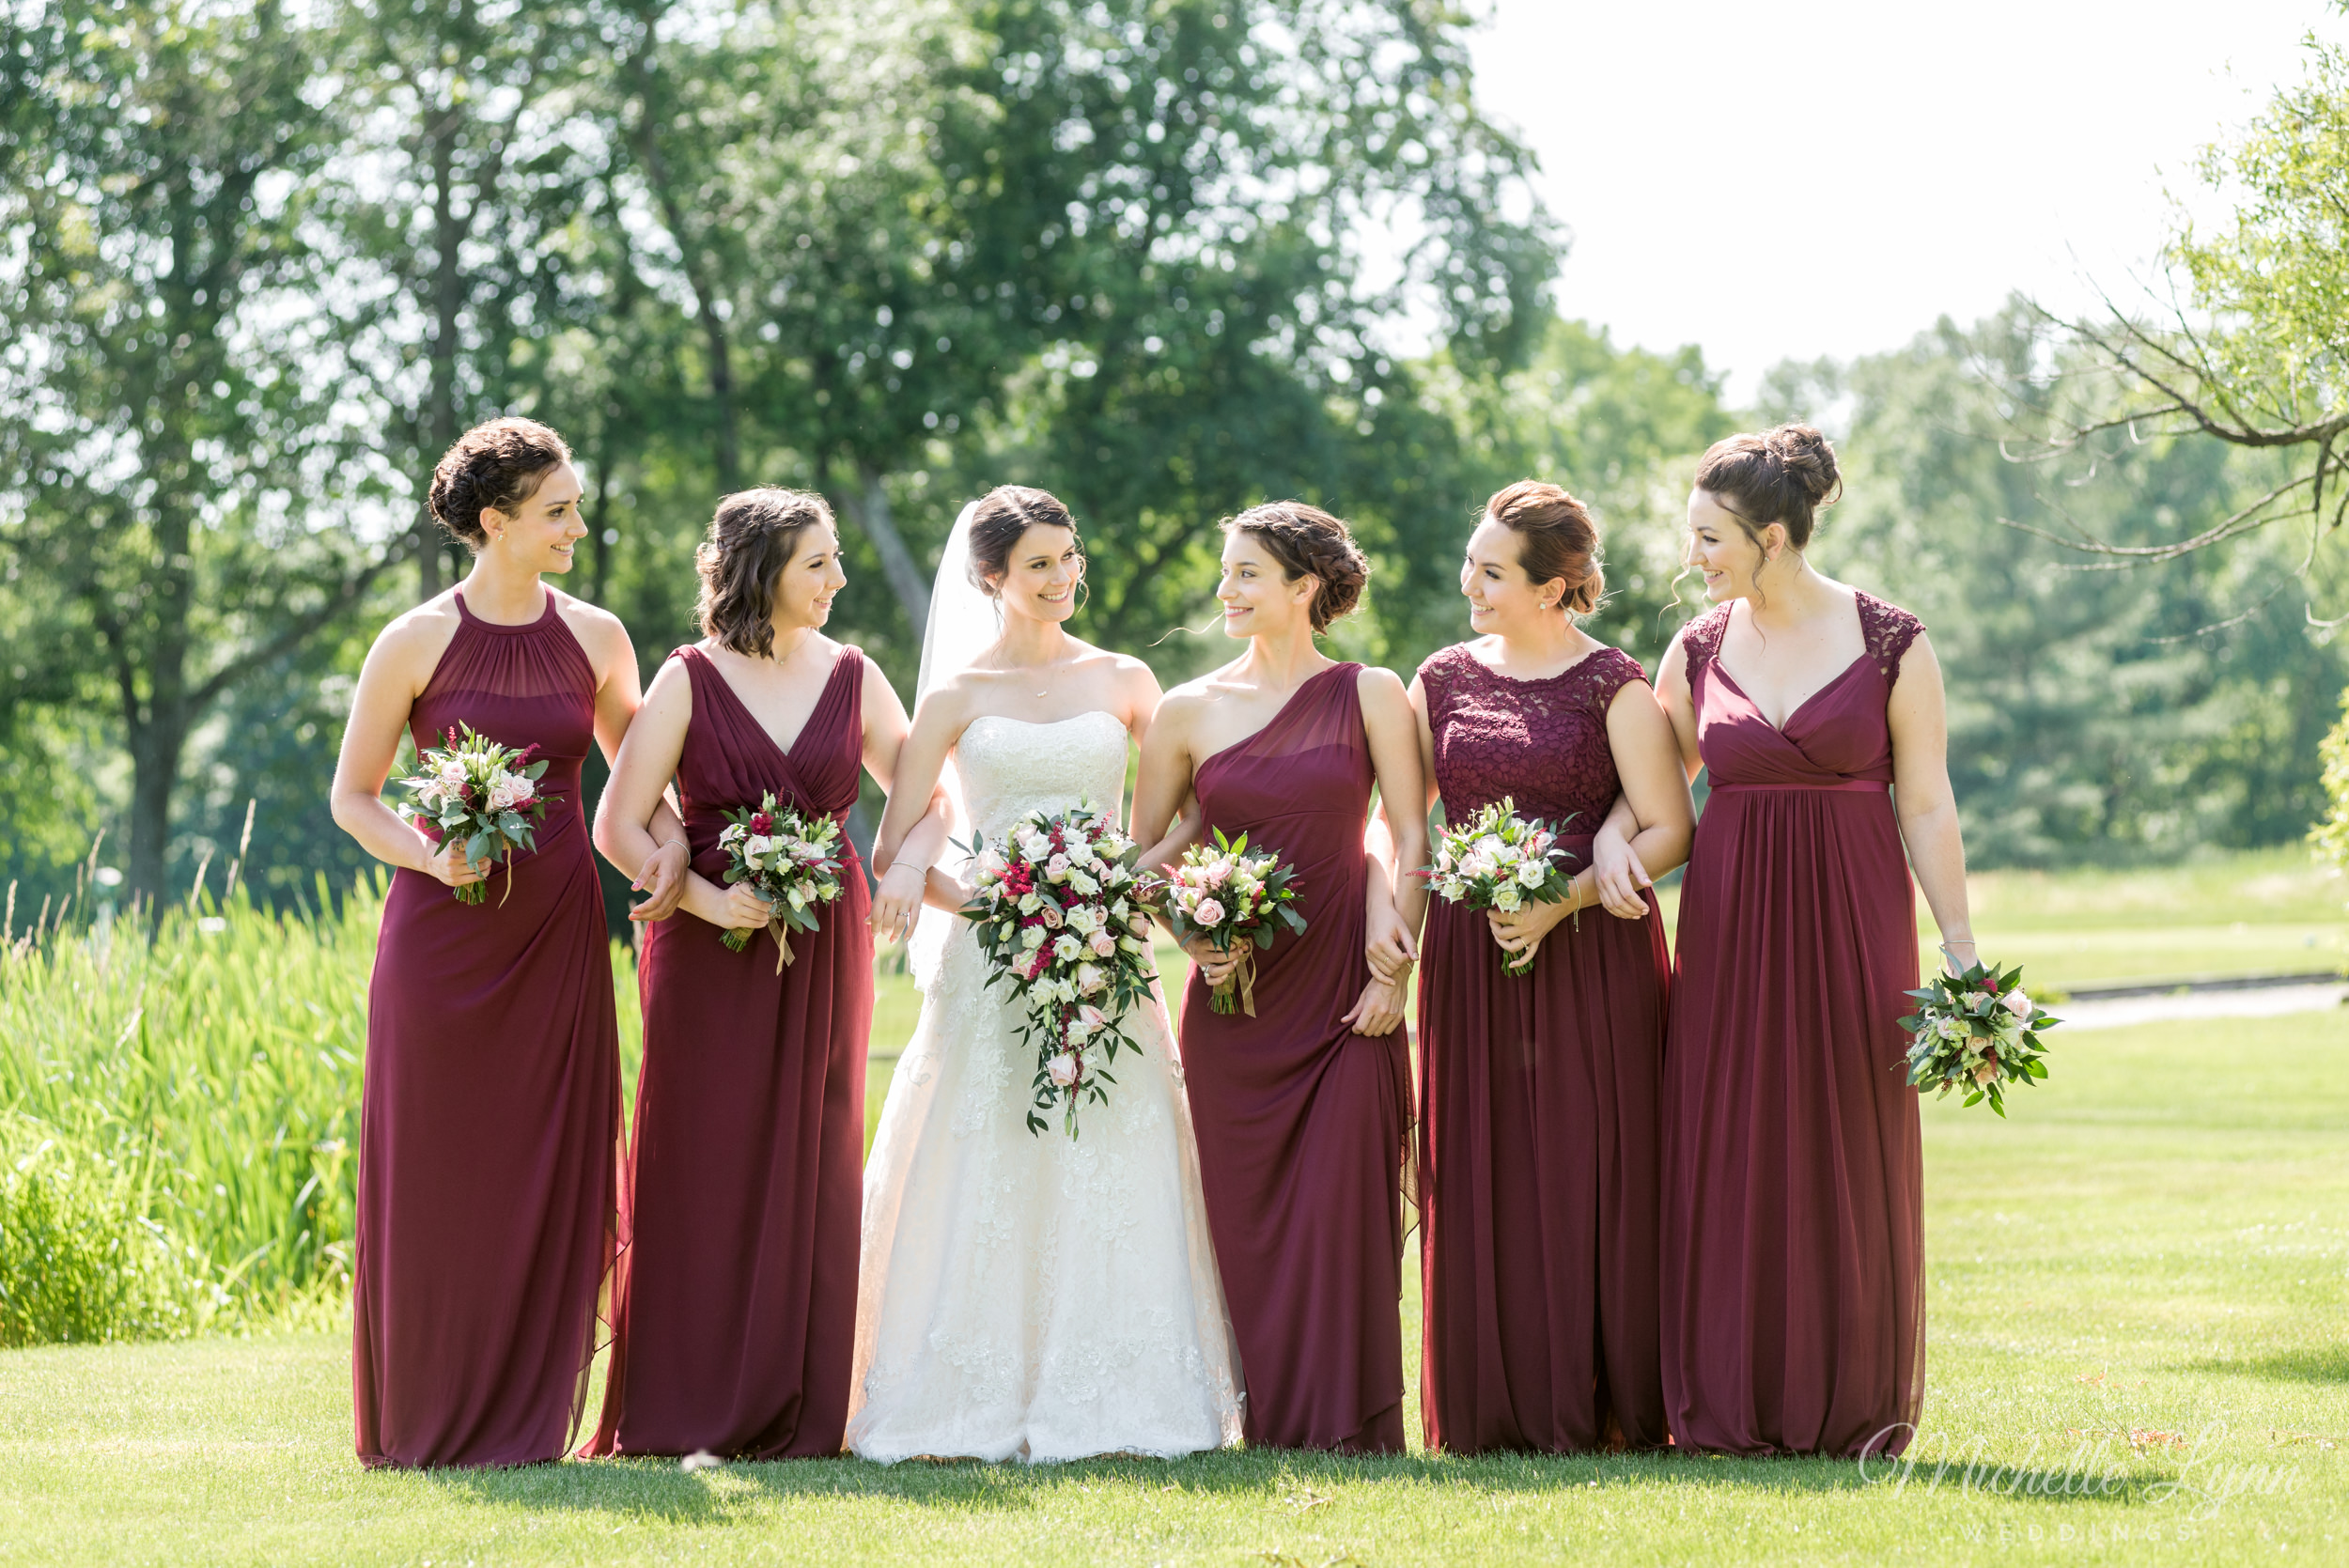 mlw-loft-at-sweet-water-country-club-wedding-photography-28.jpg